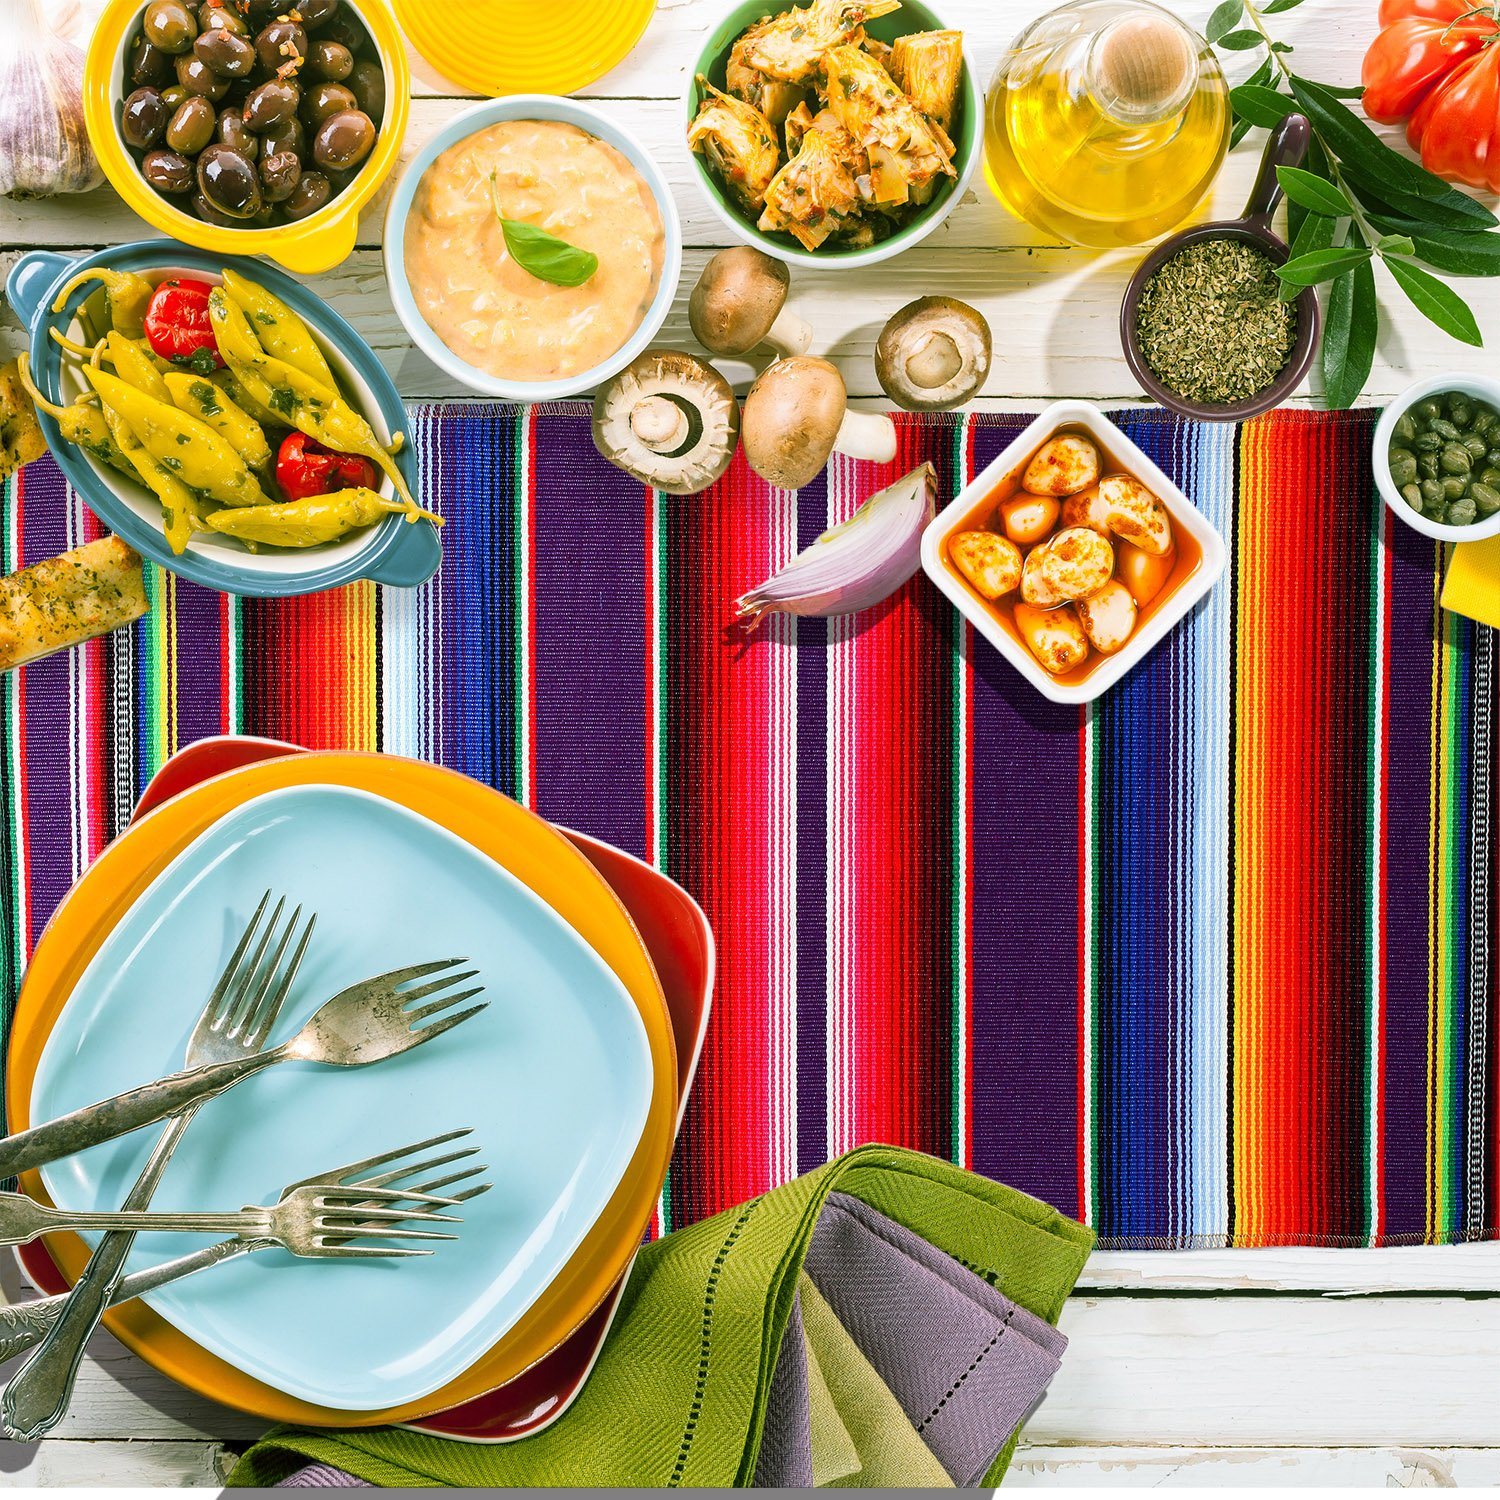 Aneco 2 Pack 14 by 84 Inch Mexican Table Runner Mexican Serape Blanket Cotton Colorful Fringe Table Runners for Mexican Party Wedding Kitchen Outdoor Decorations by Aneco (Image #6)